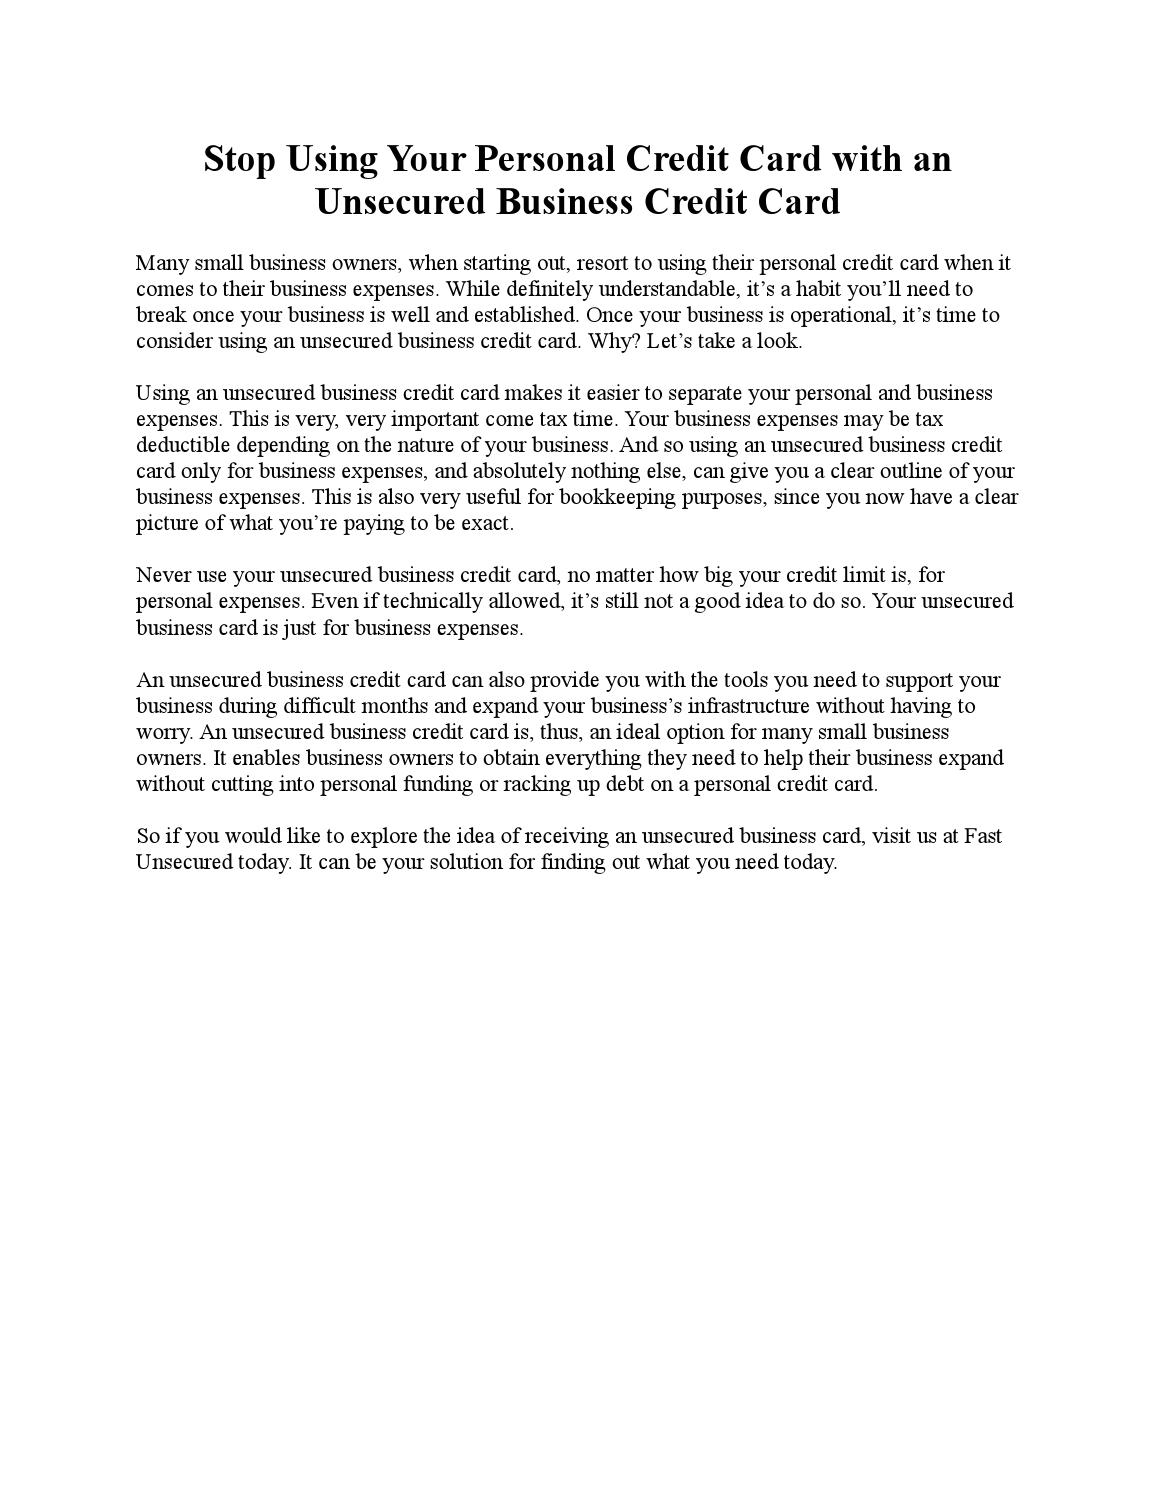 Stop using your personal credit card with an unsecured business stop using your personal credit card with an unsecured business credit card by christa luna issuu reheart